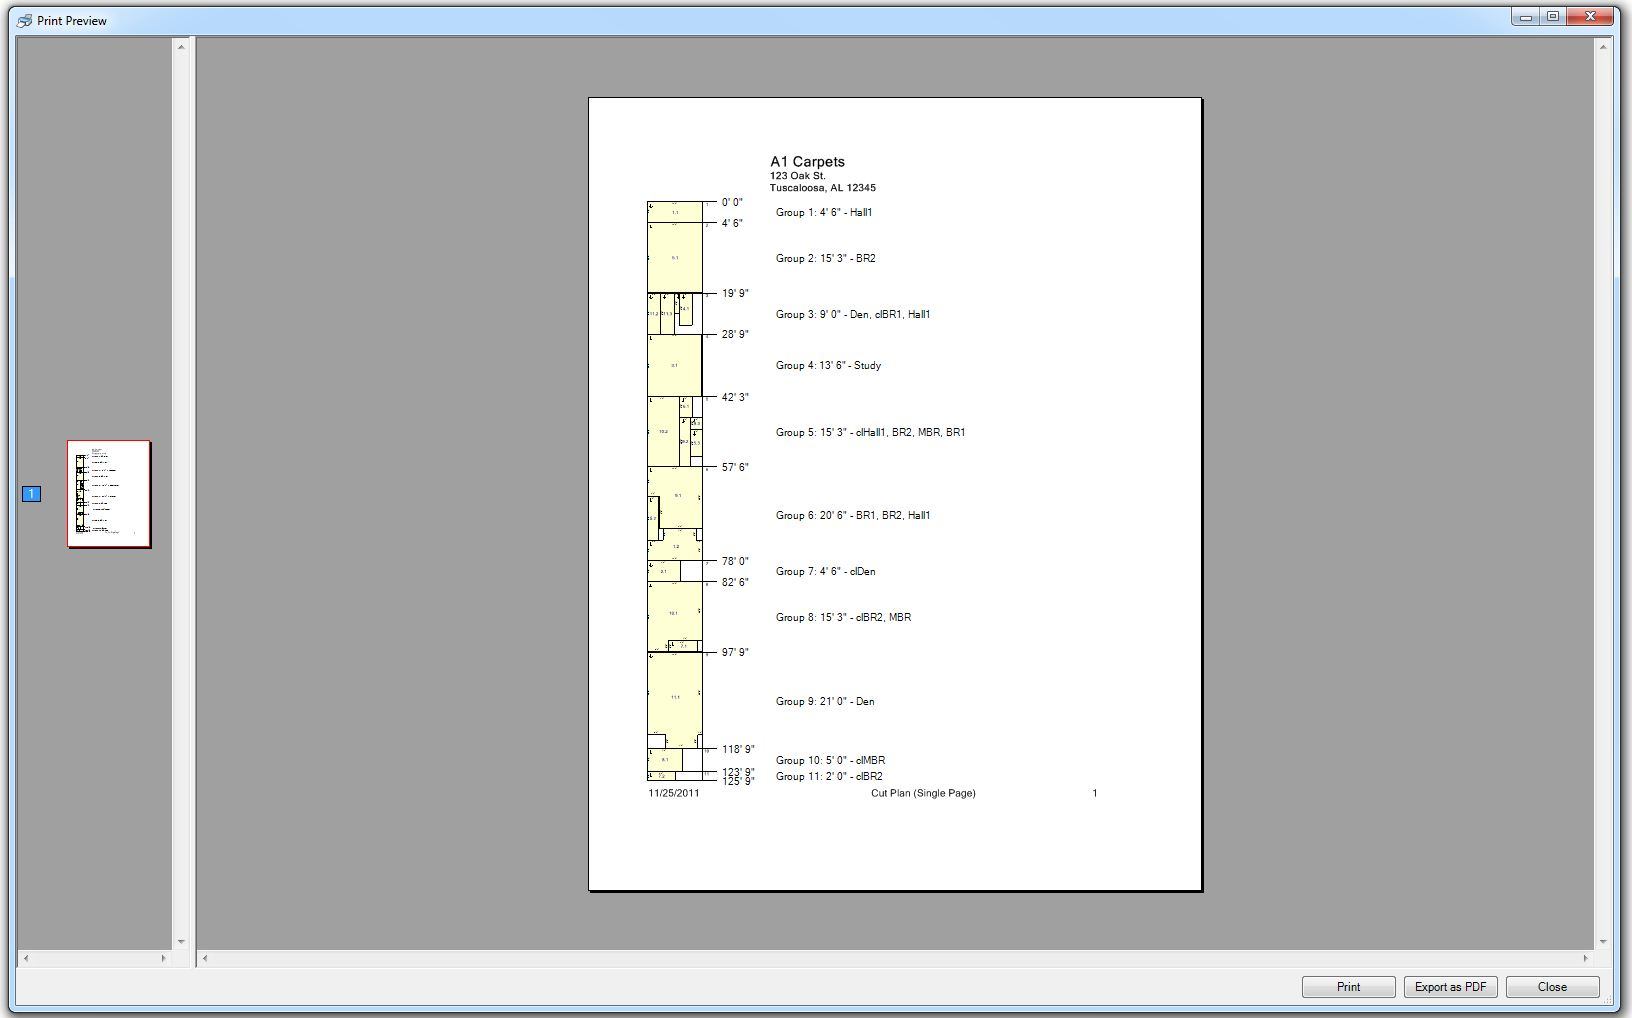 020_cut-layout-report.JPG